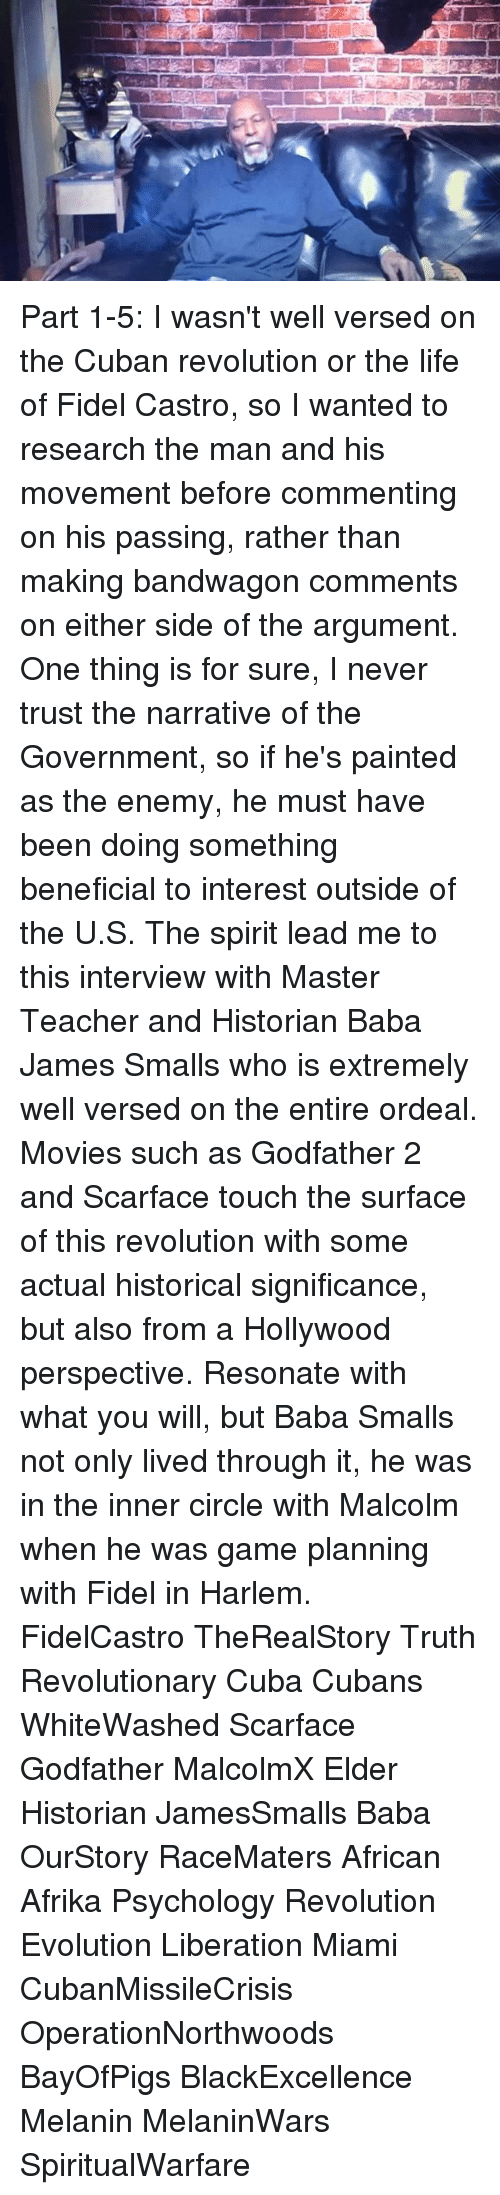 godfather 2: Part 1-5: I wasn't well versed on the Cuban revolution or the life of Fidel Castro, so I wanted to research the man and his movement before commenting on his passing, rather than making bandwagon comments on either side of the argument. One thing is for sure, I never trust the narrative of the Government, so if he's painted as the enemy, he must have been doing something beneficial to interest outside of the U.S. The spirit lead me to this interview with Master Teacher and Historian Baba James Smalls who is extremely well versed on the entire ordeal. Movies such as Godfather 2 and Scarface touch the surface of this revolution with some actual historical significance, but also from a Hollywood perspective. Resonate with what you will, but Baba Smalls not only lived through it, he was in the inner circle with Malcolm when he was game planning with Fidel in Harlem. FidelCastro TheRealStory Truth Revolutionary Cuba Cubans WhiteWashed Scarface Godfather MalcolmX Elder Historian JamesSmalls Baba OurStory RaceMaters African Afrika Psychology Revolution Evolution Liberation Miami CubanMissileCrisis OperationNorthwoods BayOfPigs BlackExcellence Melanin MelaninWars SpiritualWarfare